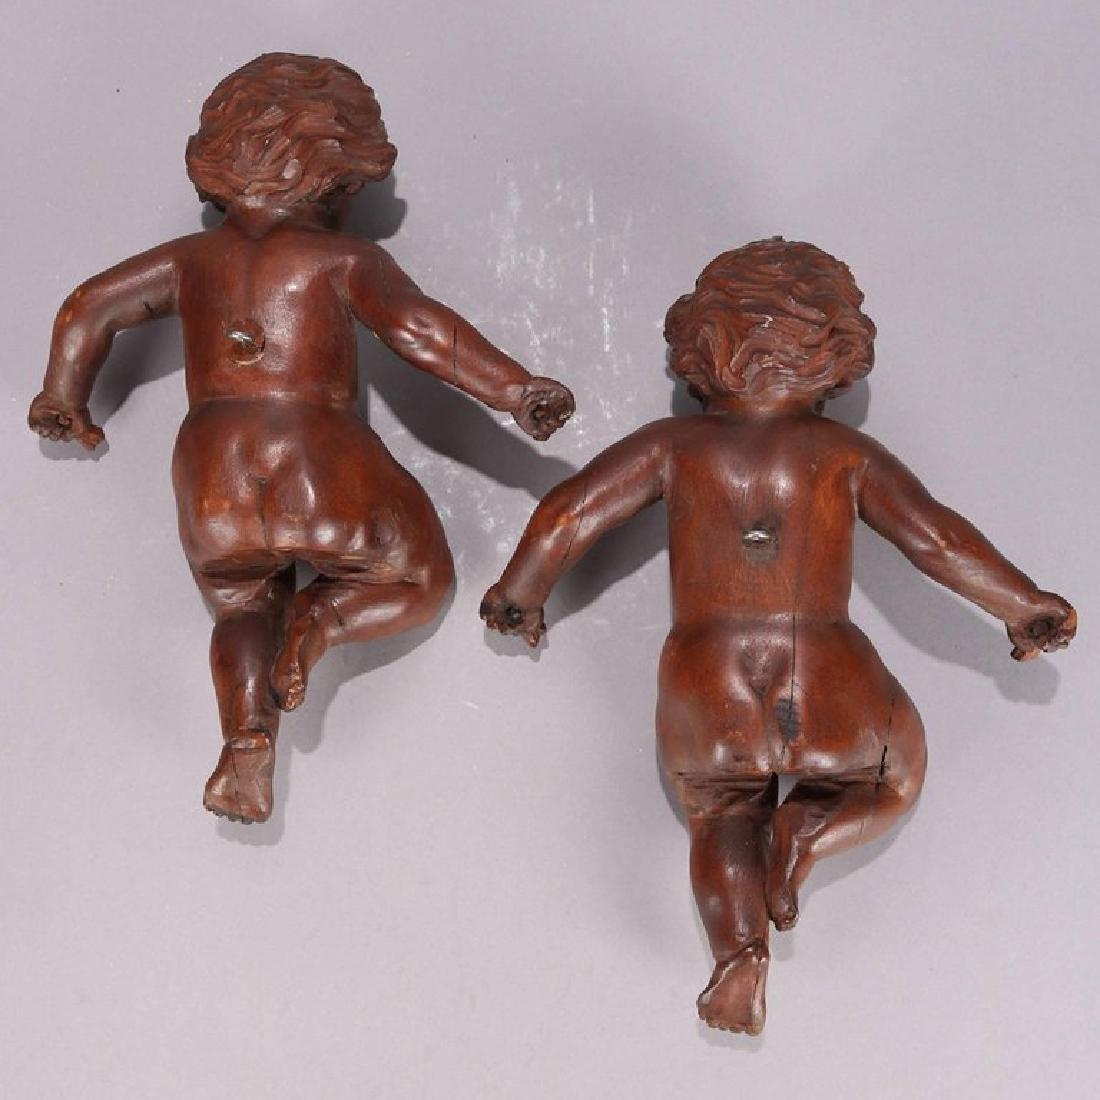 2 Large Italian Carved Walnut Figural Wall Sculptures - 2